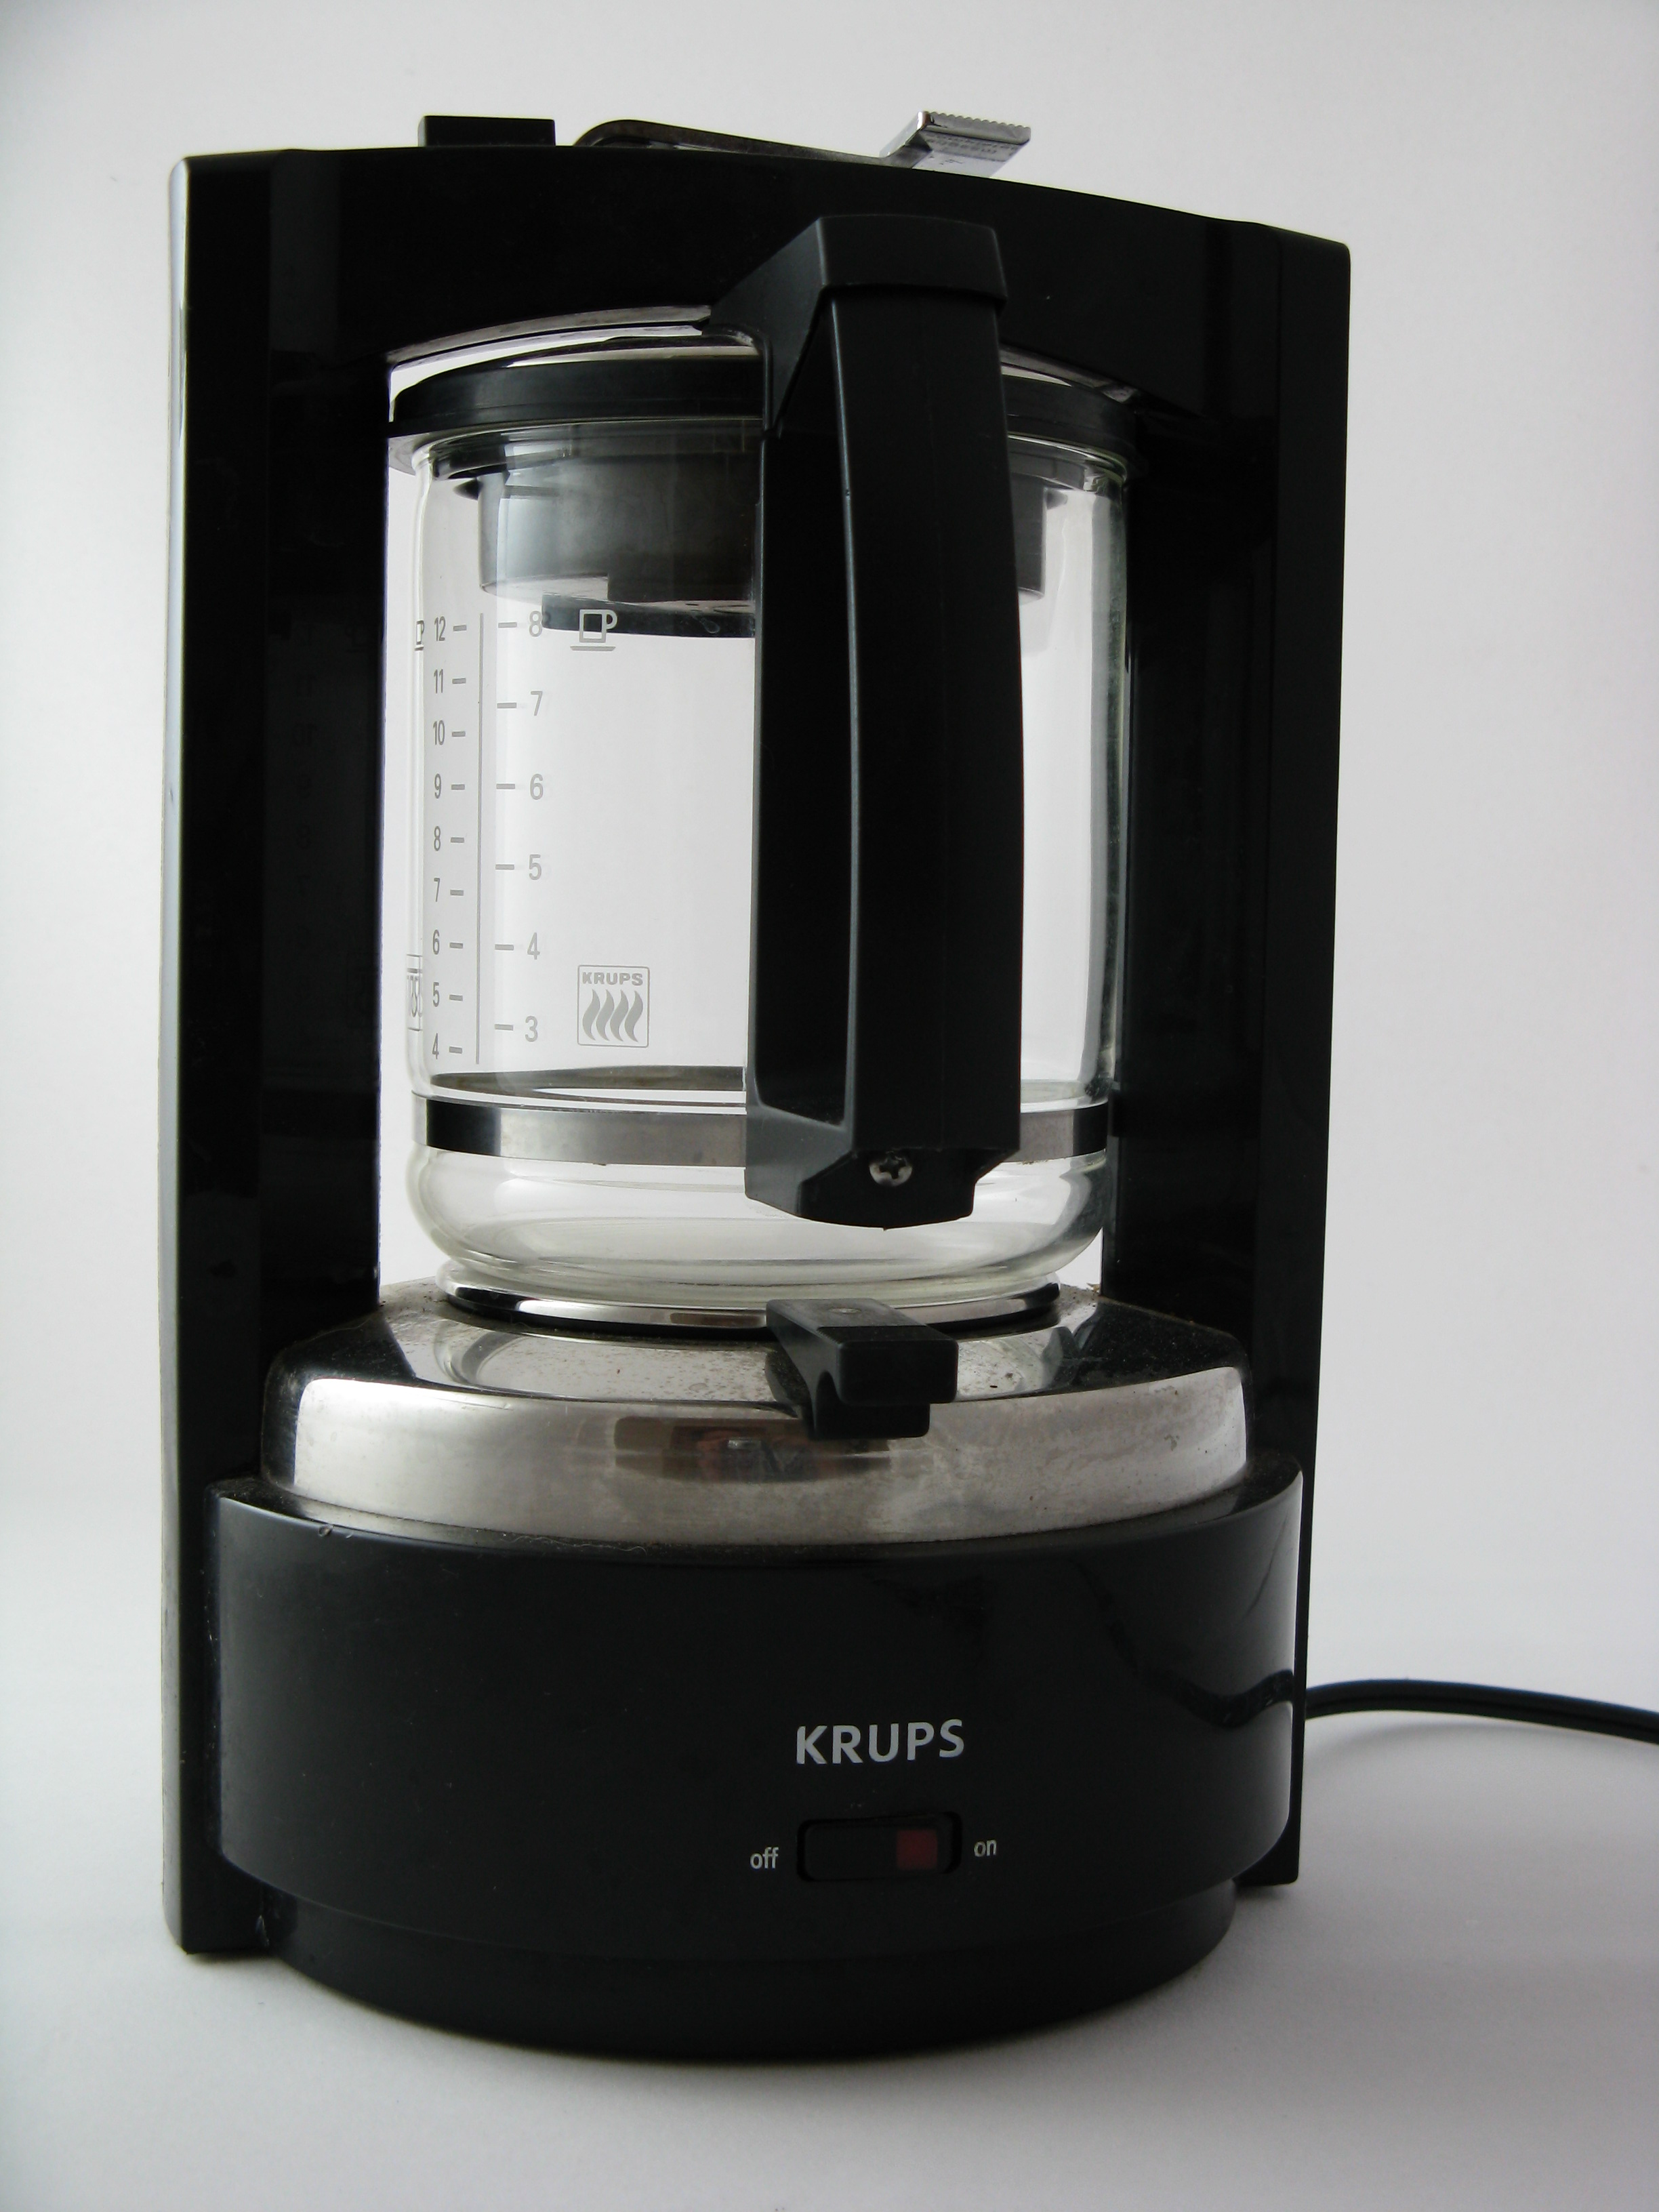 krups coffee maker krups ea8108 roma automatic coffee machine krups espresso mini 963. Black Bedroom Furniture Sets. Home Design Ideas